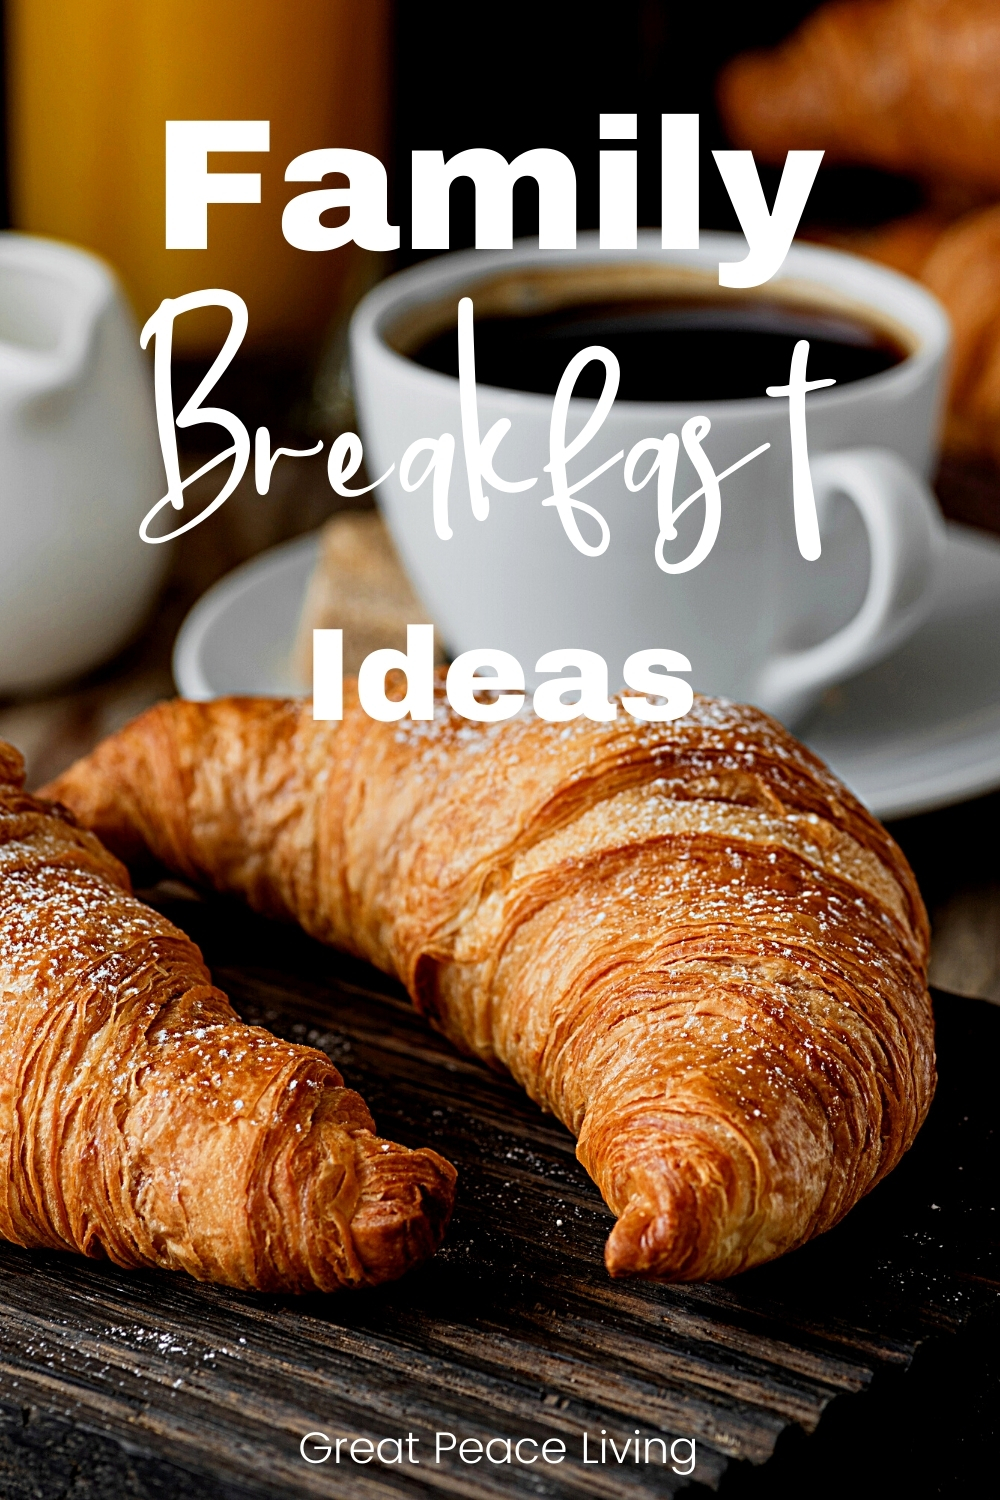 Family Breakfast Ideas - croissants & coffee photo